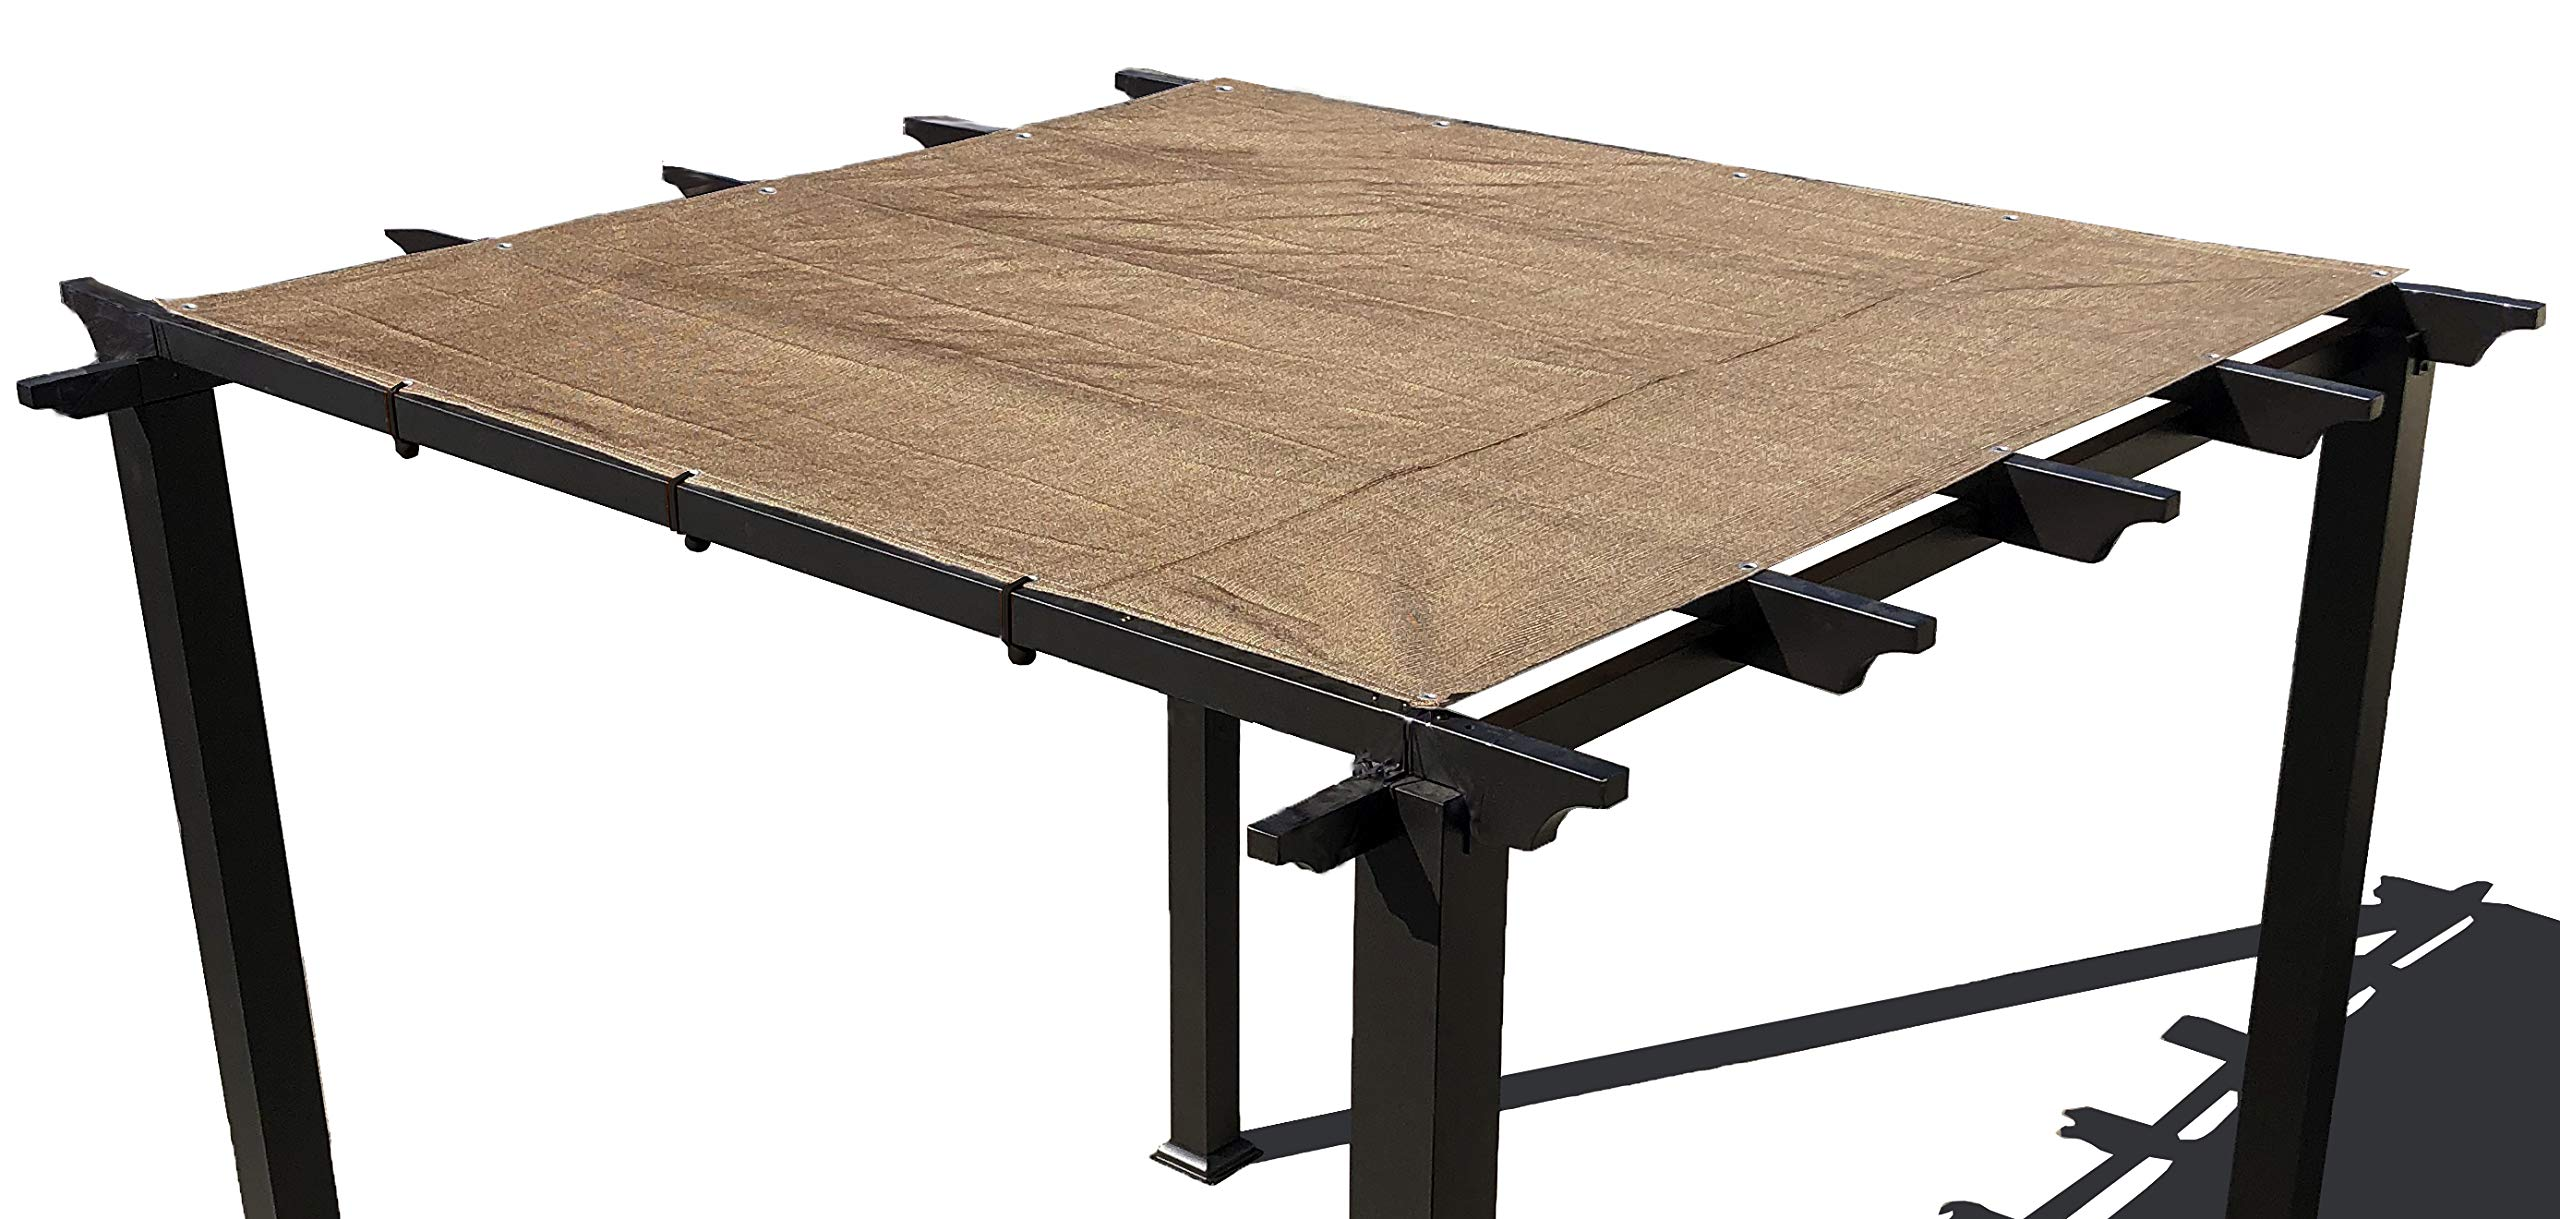 Alion Home Pergola Shade Cover Sunblock Patio Canopy HDPE Permeable Cloth with Grommets (12' x 12', Walnut)